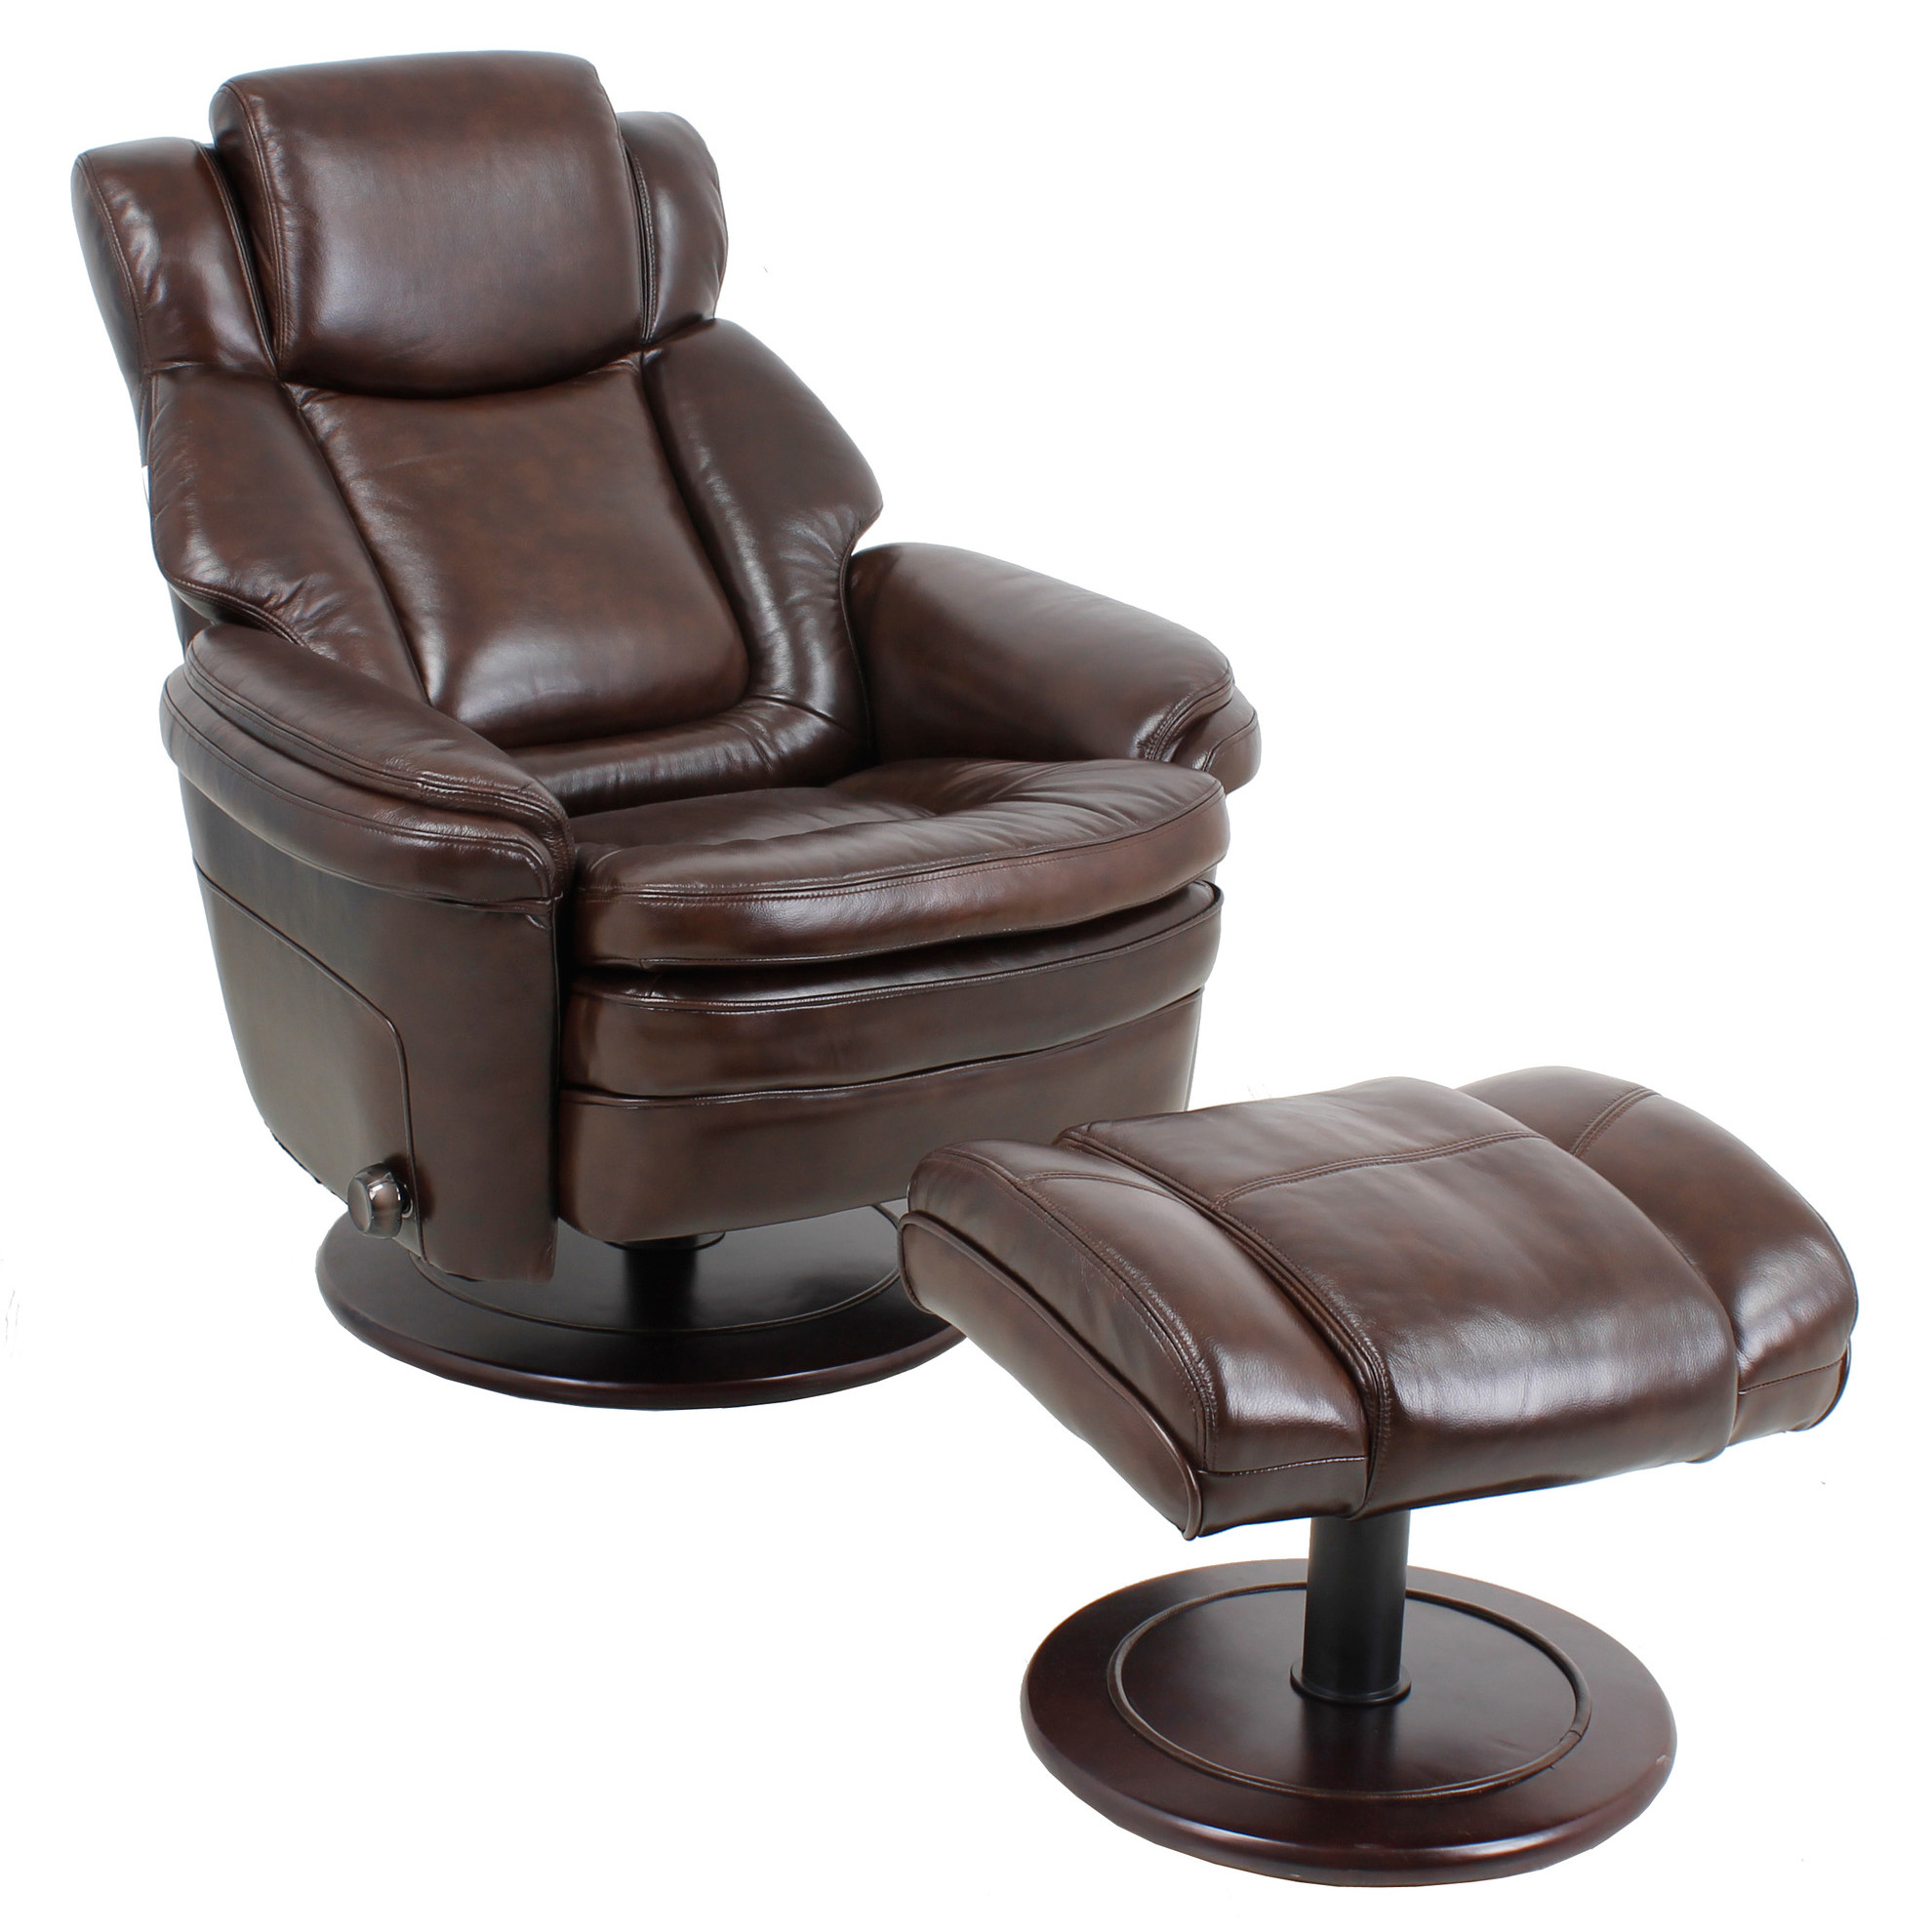 Barcalounger Eclipse II Leather Recliner Chair And Ottoman